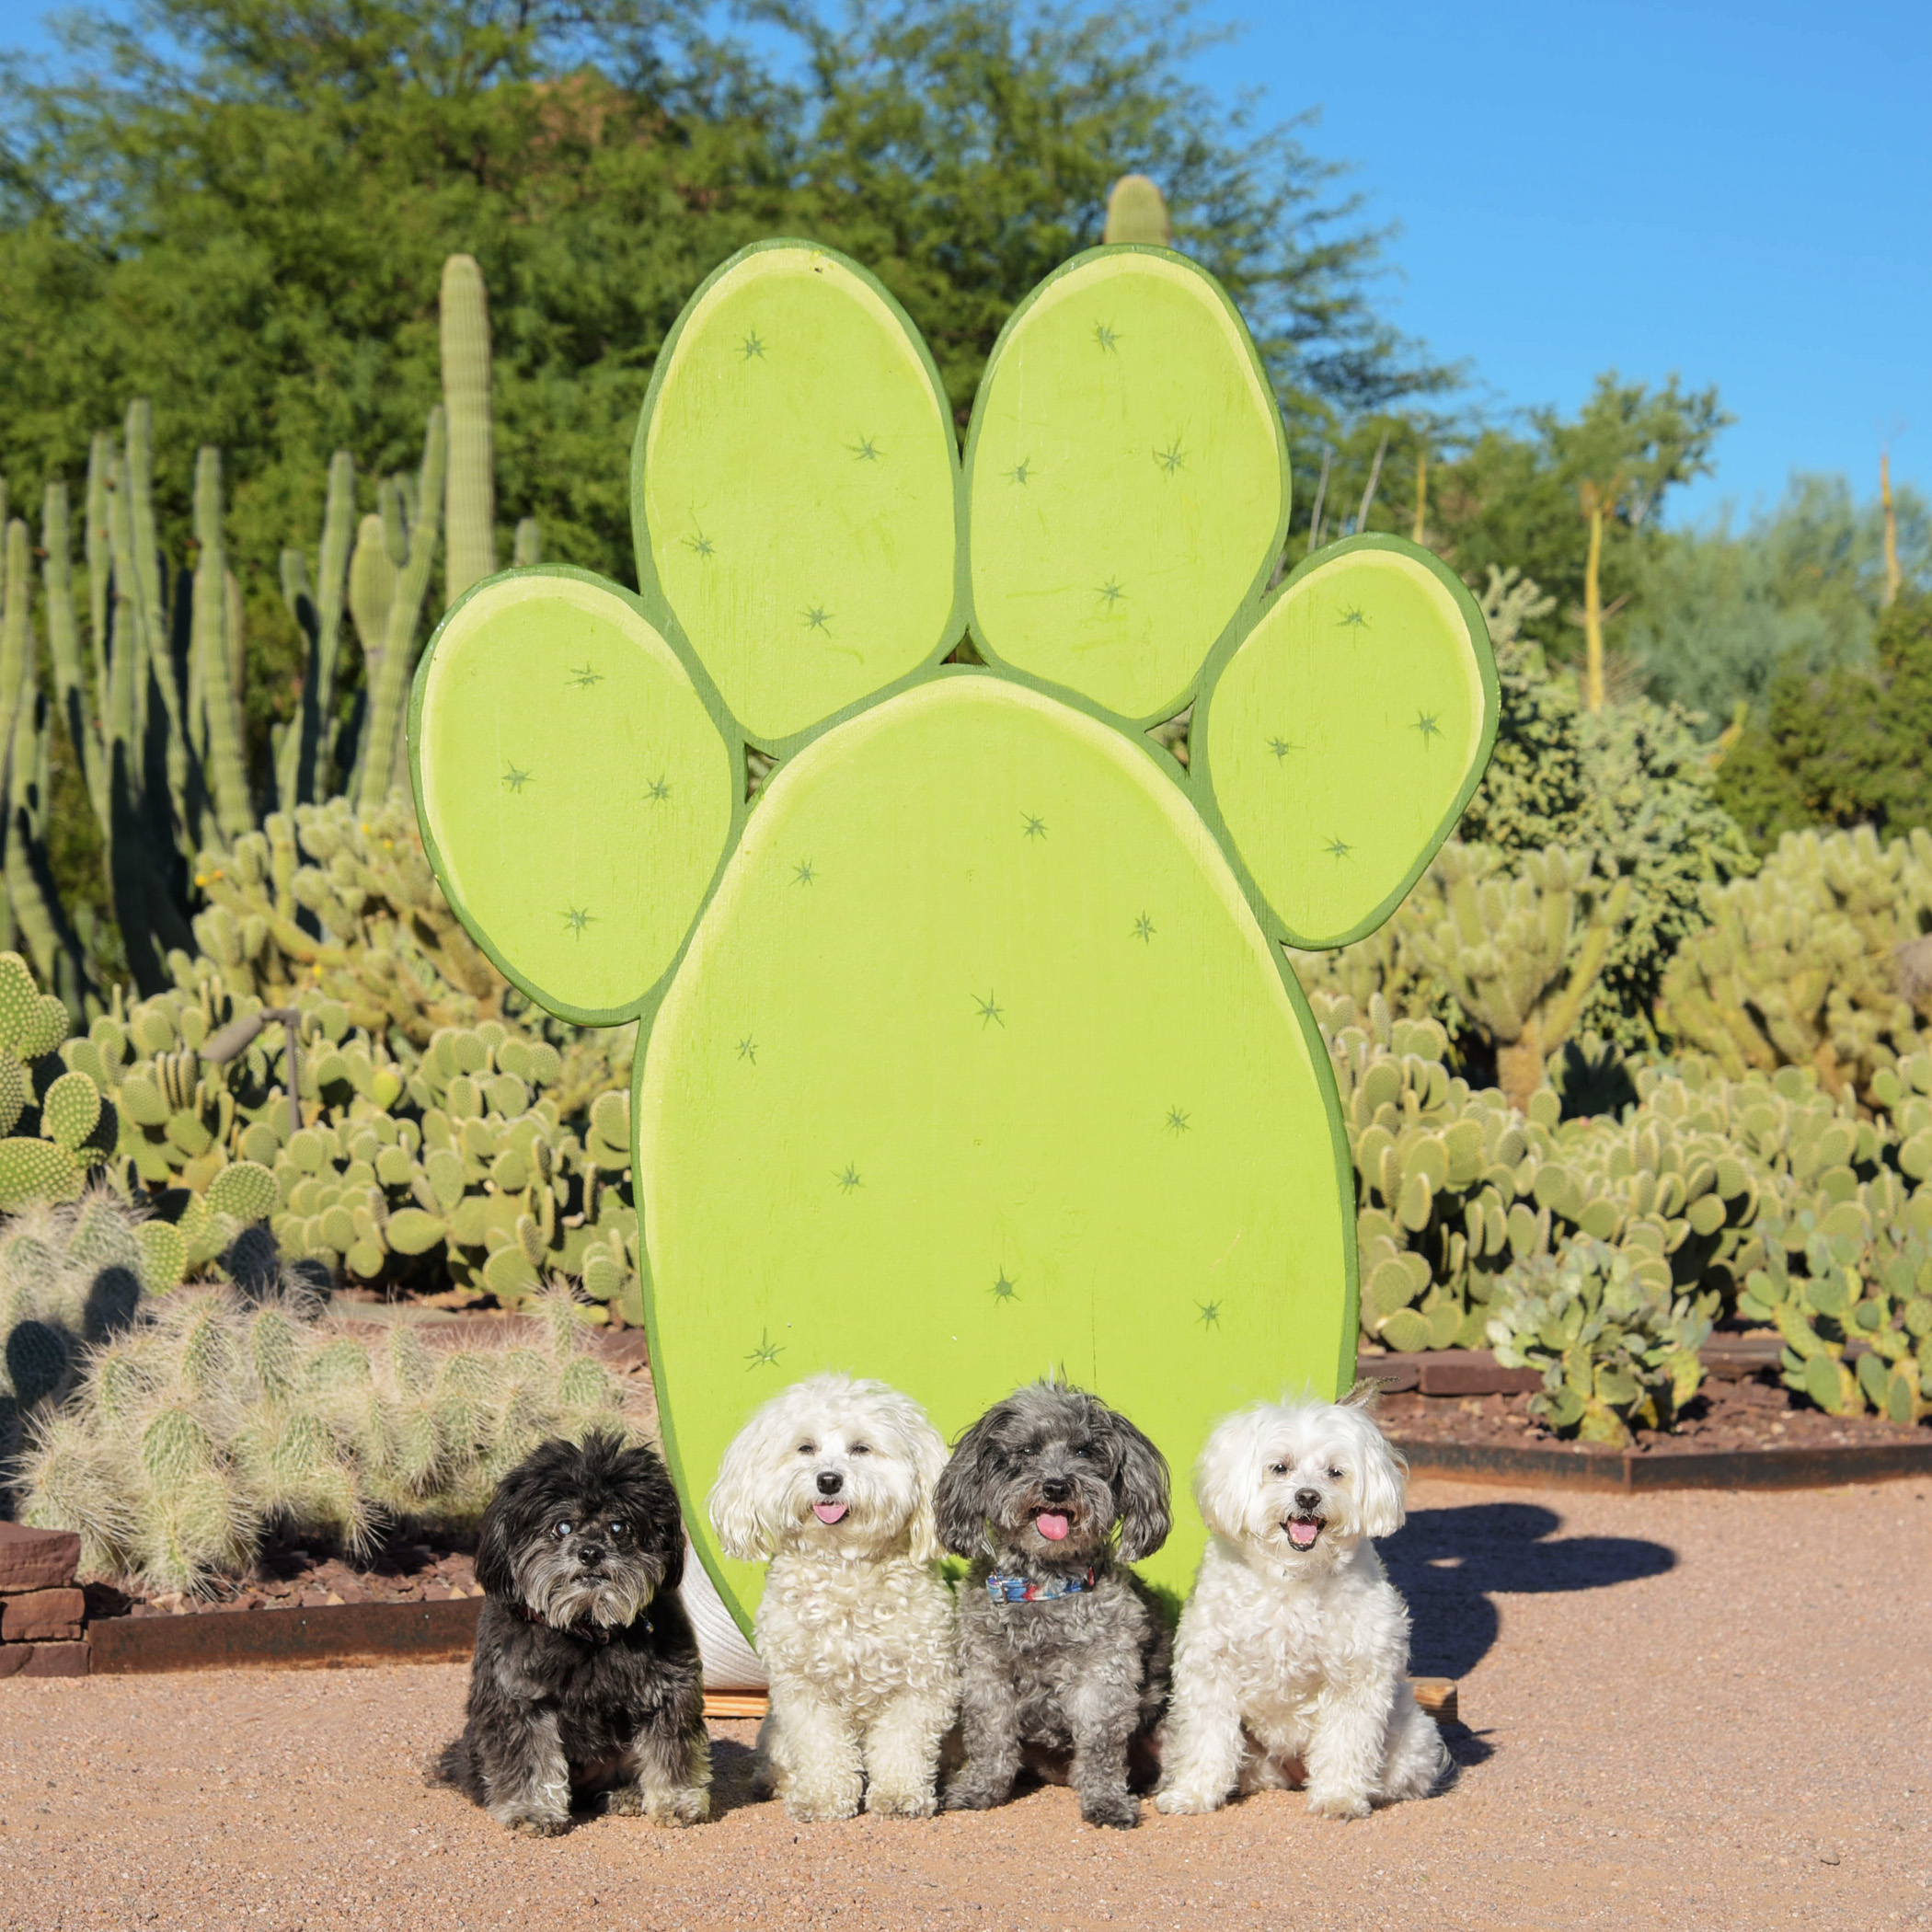 Woah, a gigantic cactus in the shape of a puppy paw! What are the chances of finding something like that at the Desert Botanical Gardens?!? And, the best part…it didn't have any stickers!